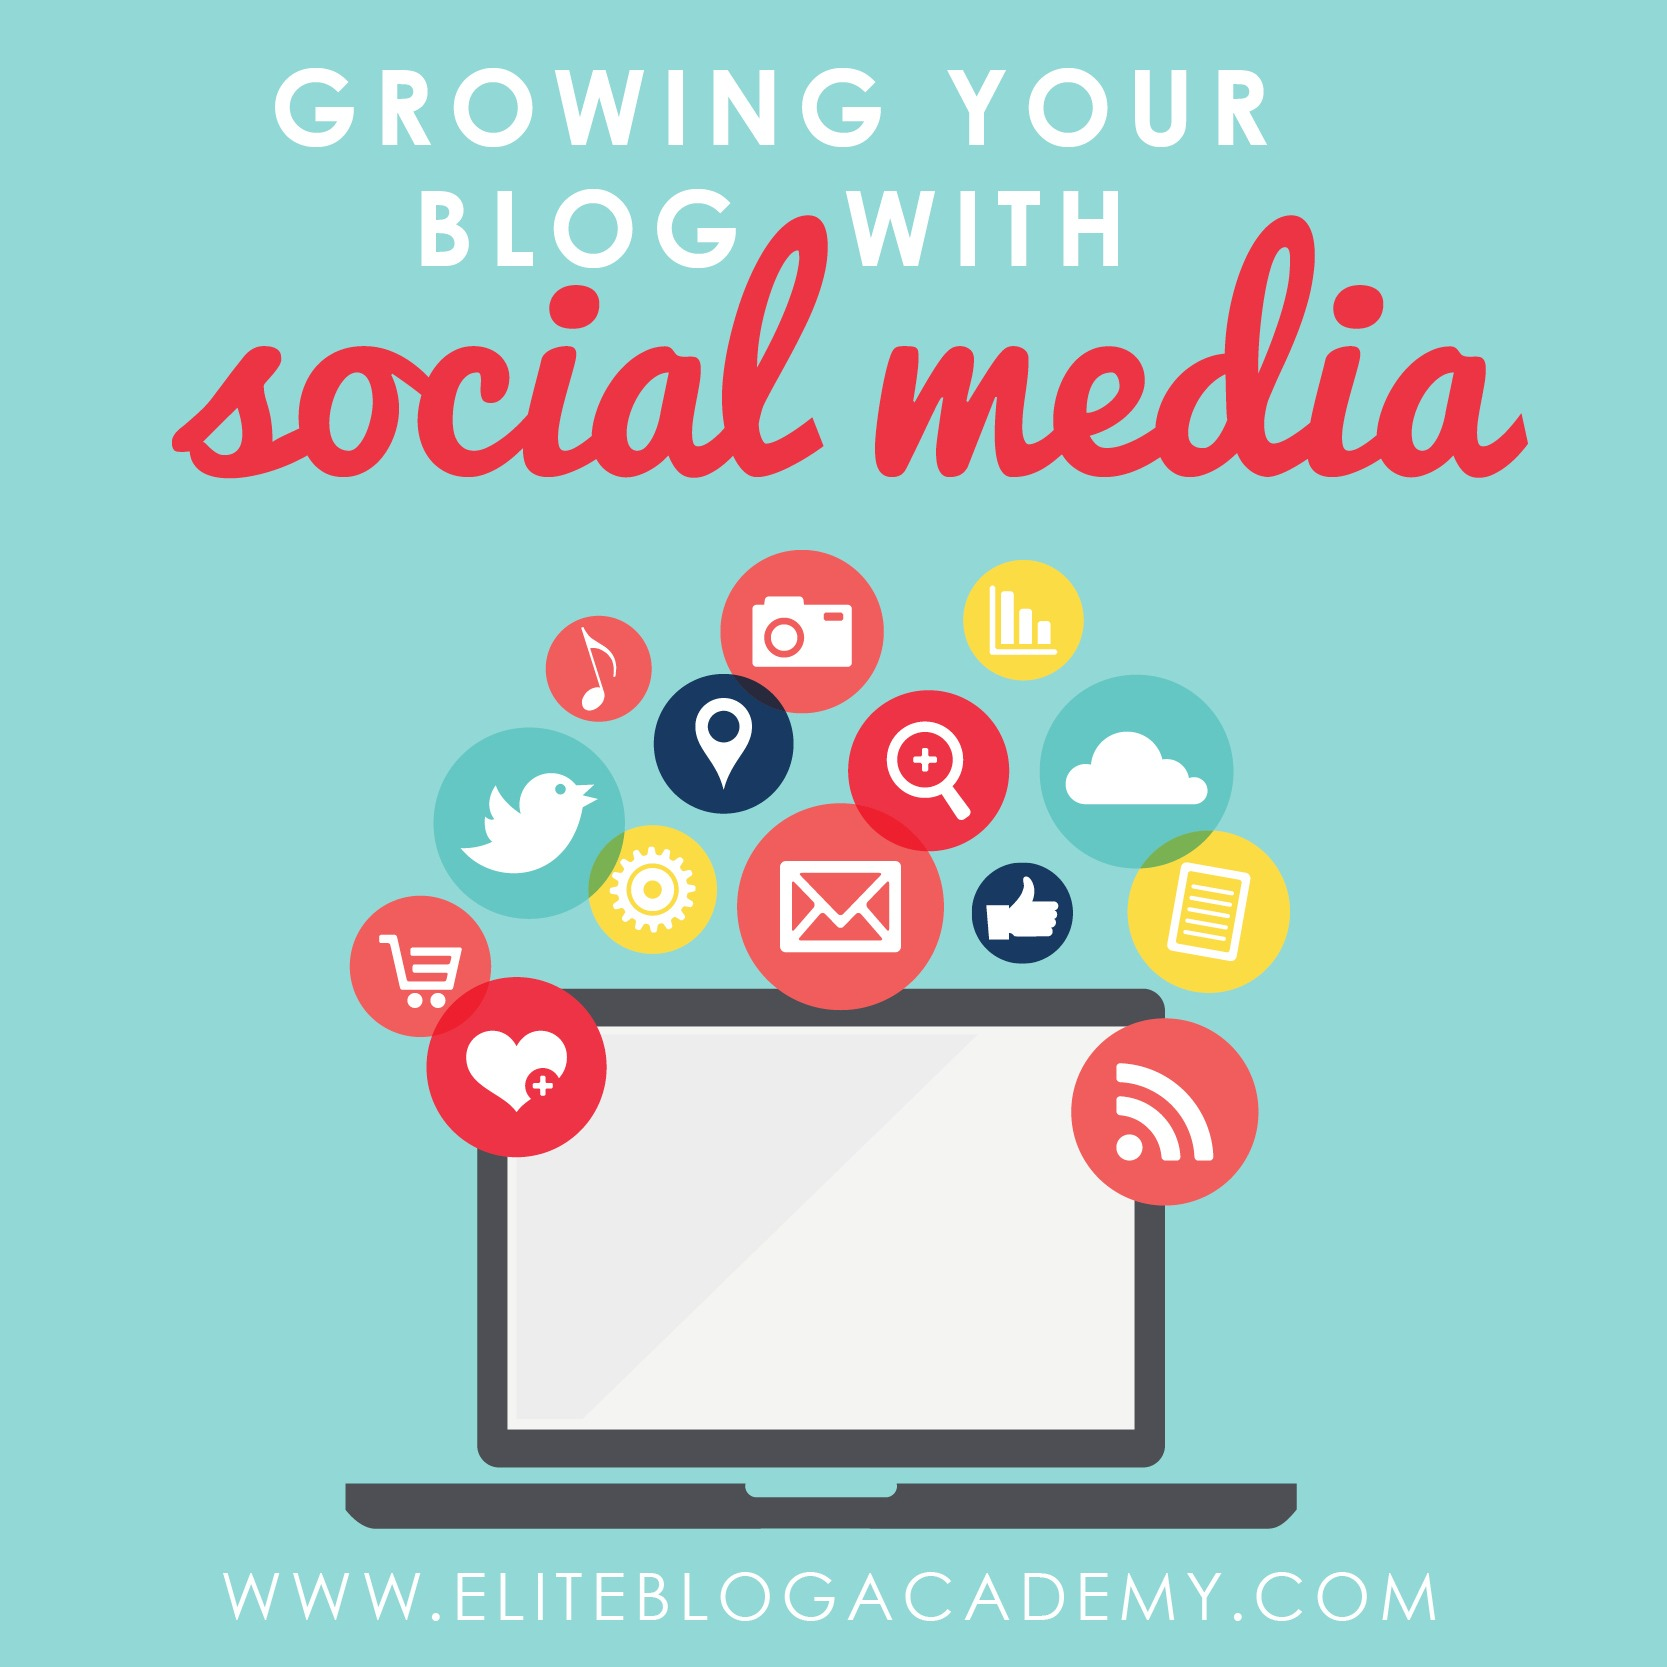 Overwhelmed w/ social media? How can you use it to specifically grow your blog? With just a little know-how, you too can use social media to grow your blog traffic & find out exactly what your audience wants--and how to give it to them. These 8 strategies will help you stop spinning your wheels w/ social media & start using it like a pro!